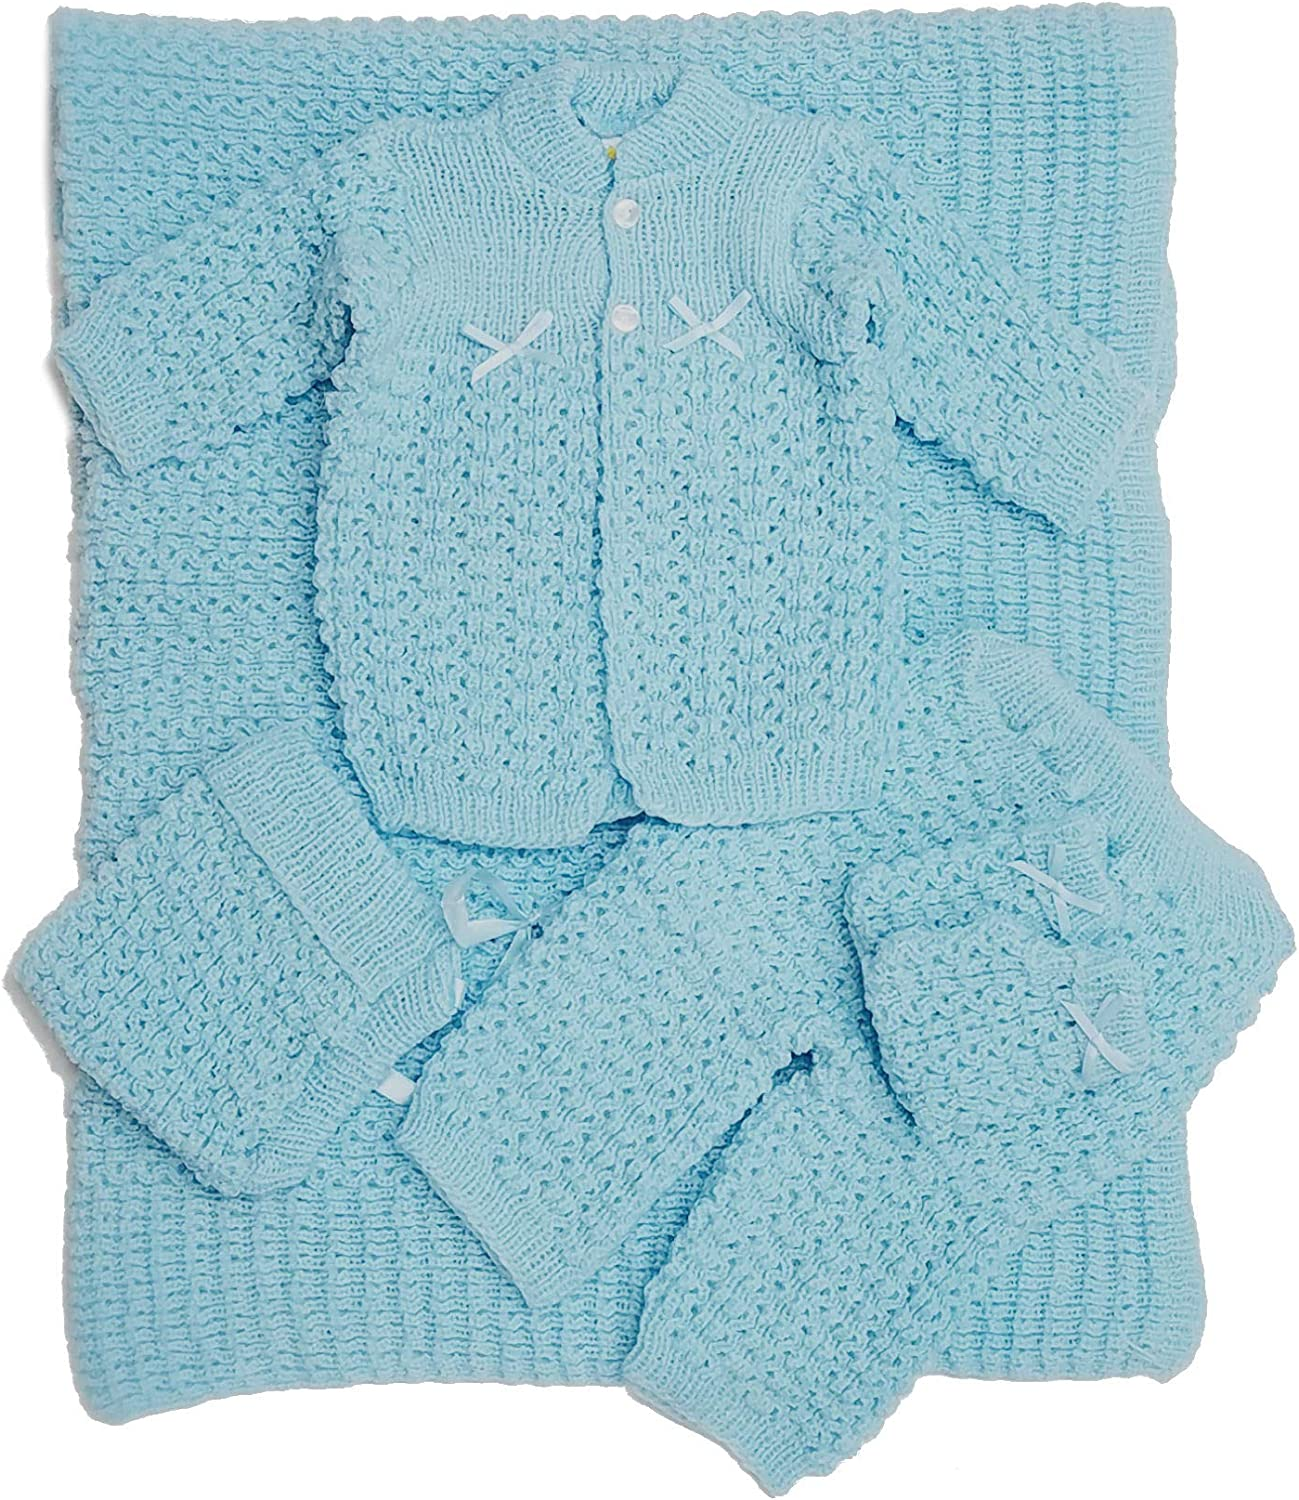 cotton baby clothes hospital clothes knitted sweater blue sweater set newborn bear baby boy outfit coming home outfit hat and booties